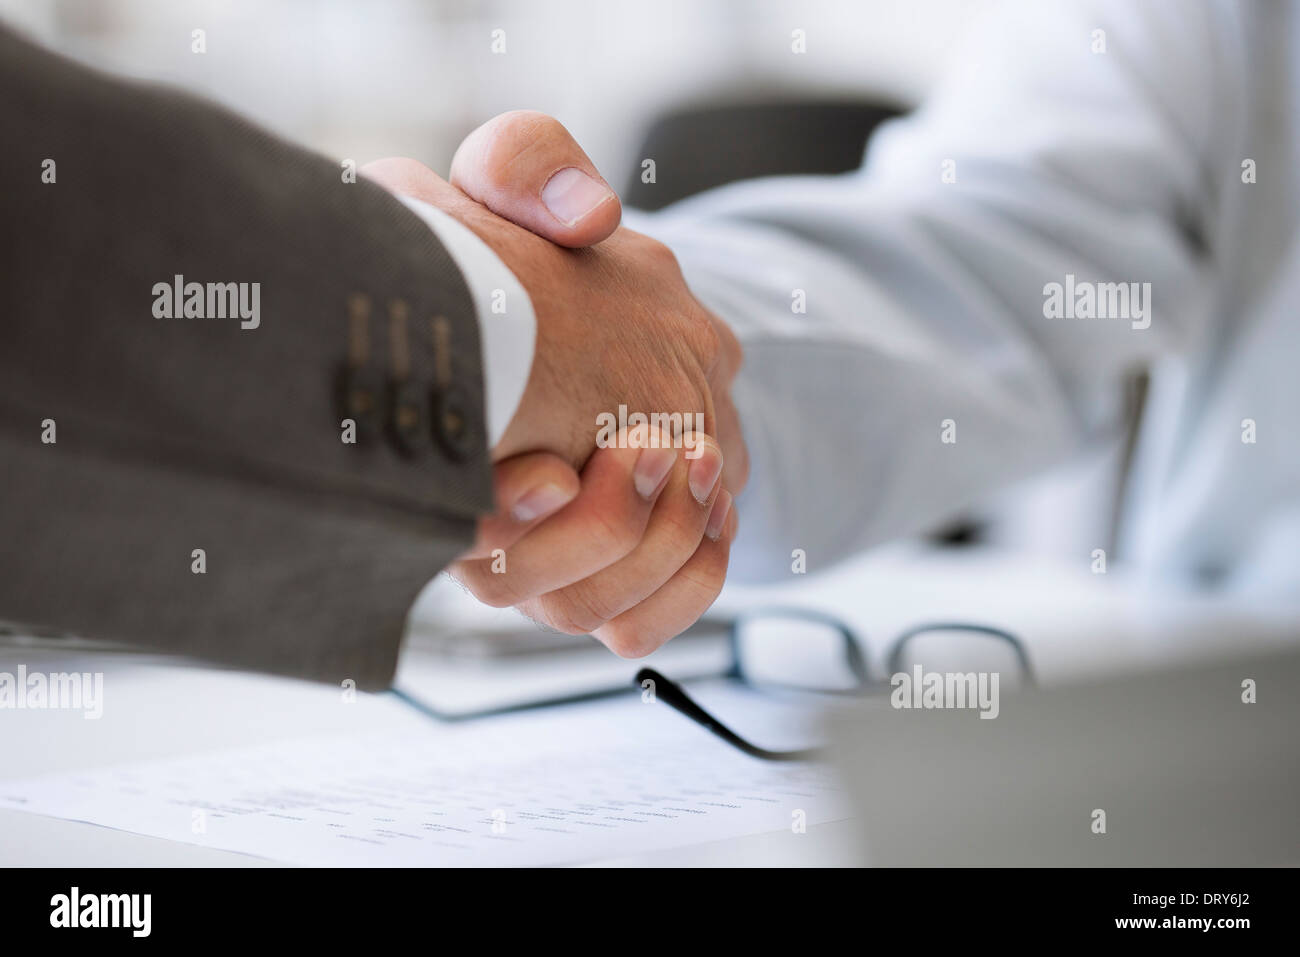 Business deal closed with handshake - Stock Image